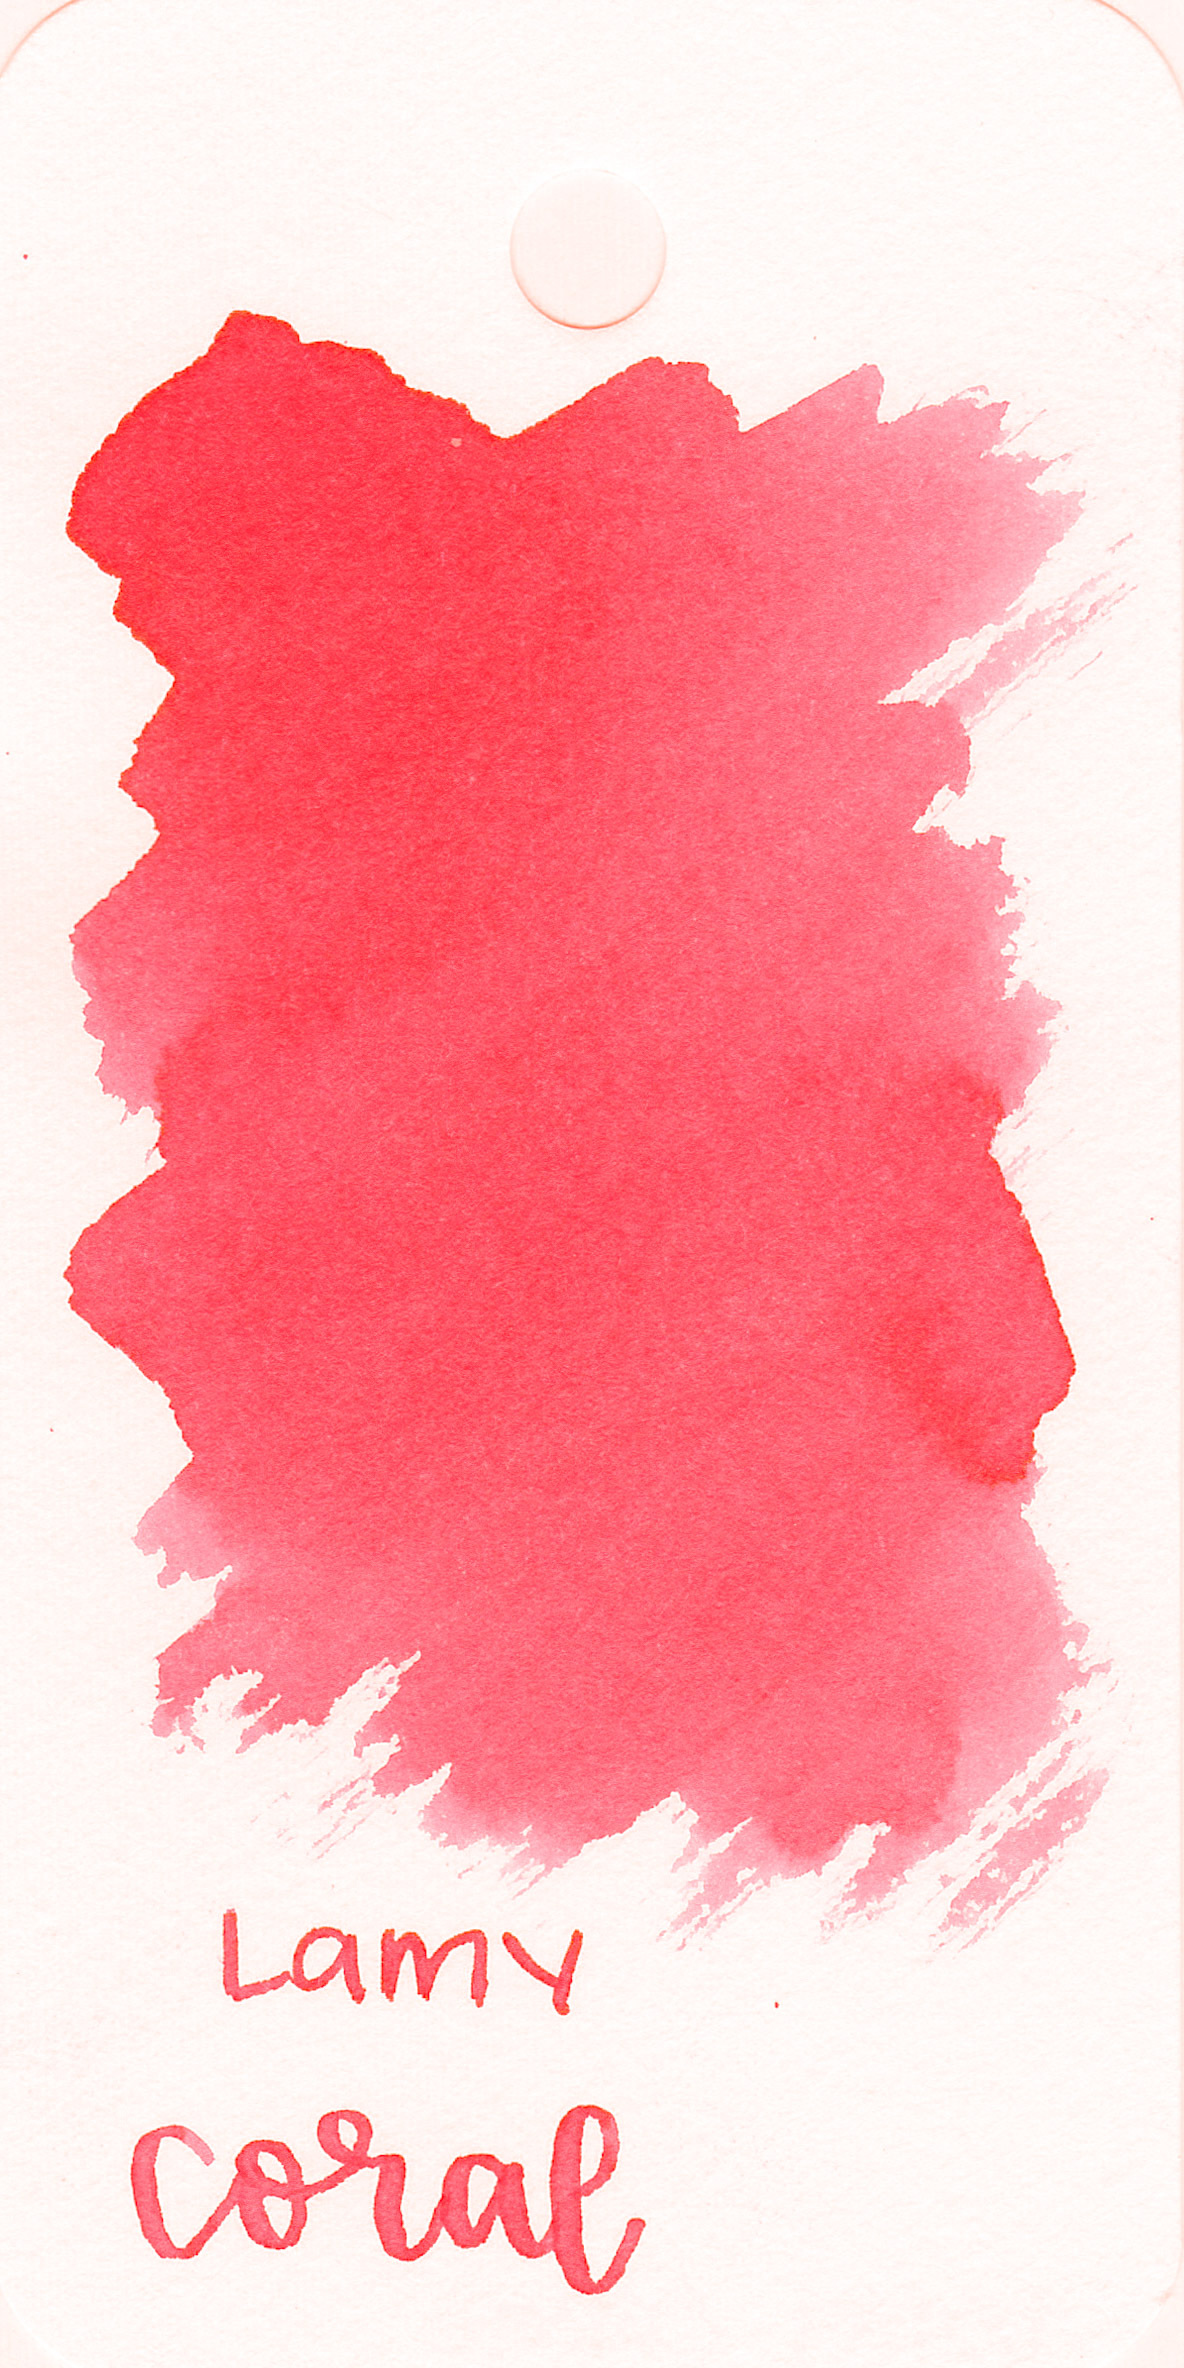 lmy-neon-coral-1.jpg